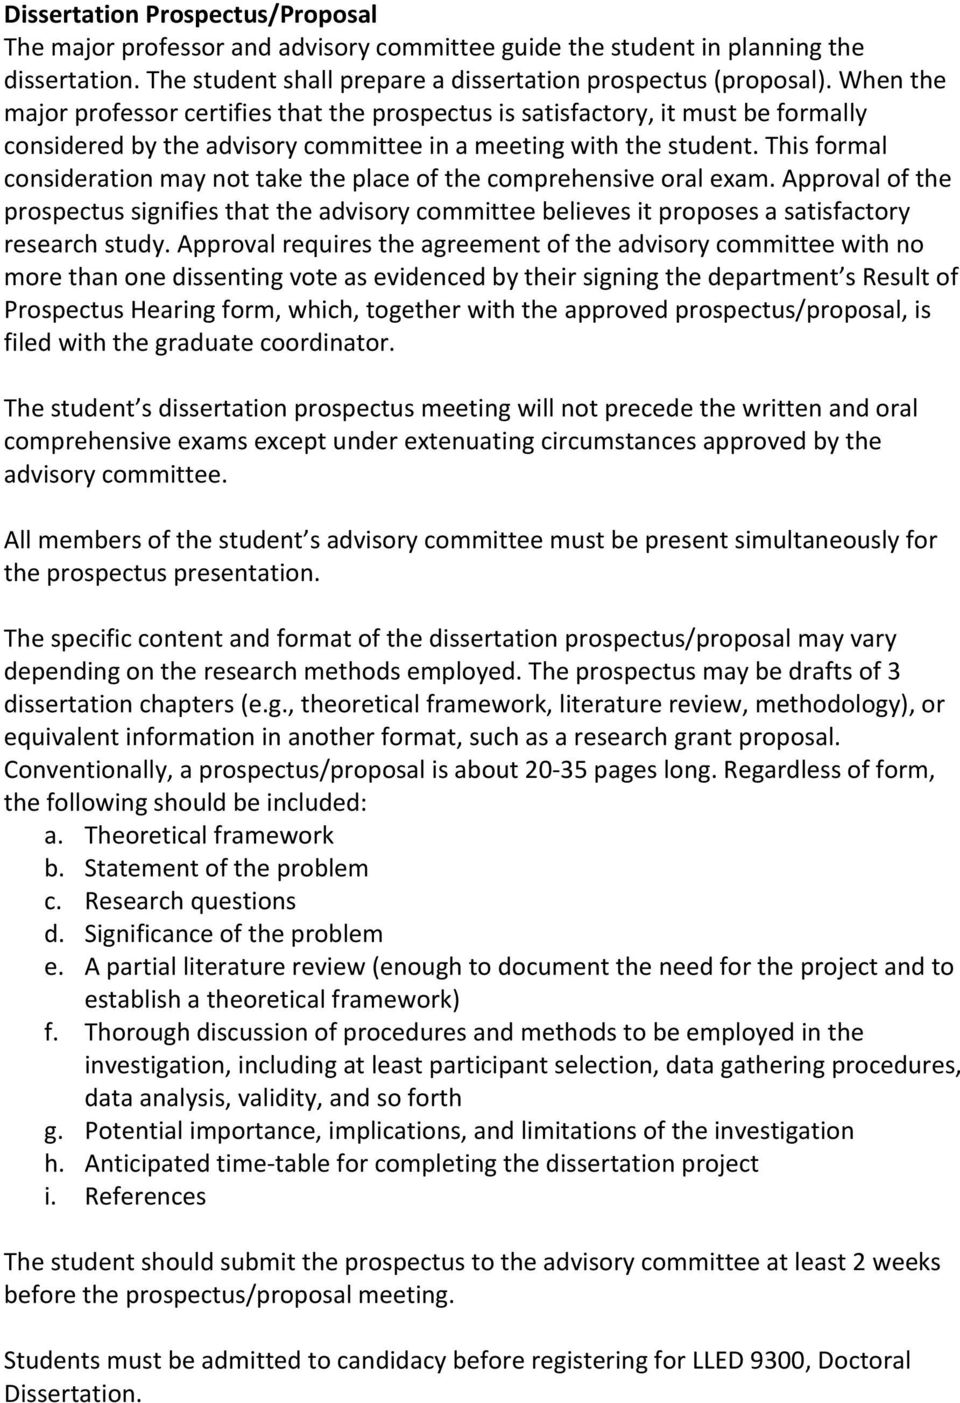 This formal consideration may not take the place of the comprehensive oral exam. Approval of the prospectus signifies that the advisory committee believes it proposes a satisfactory research study.